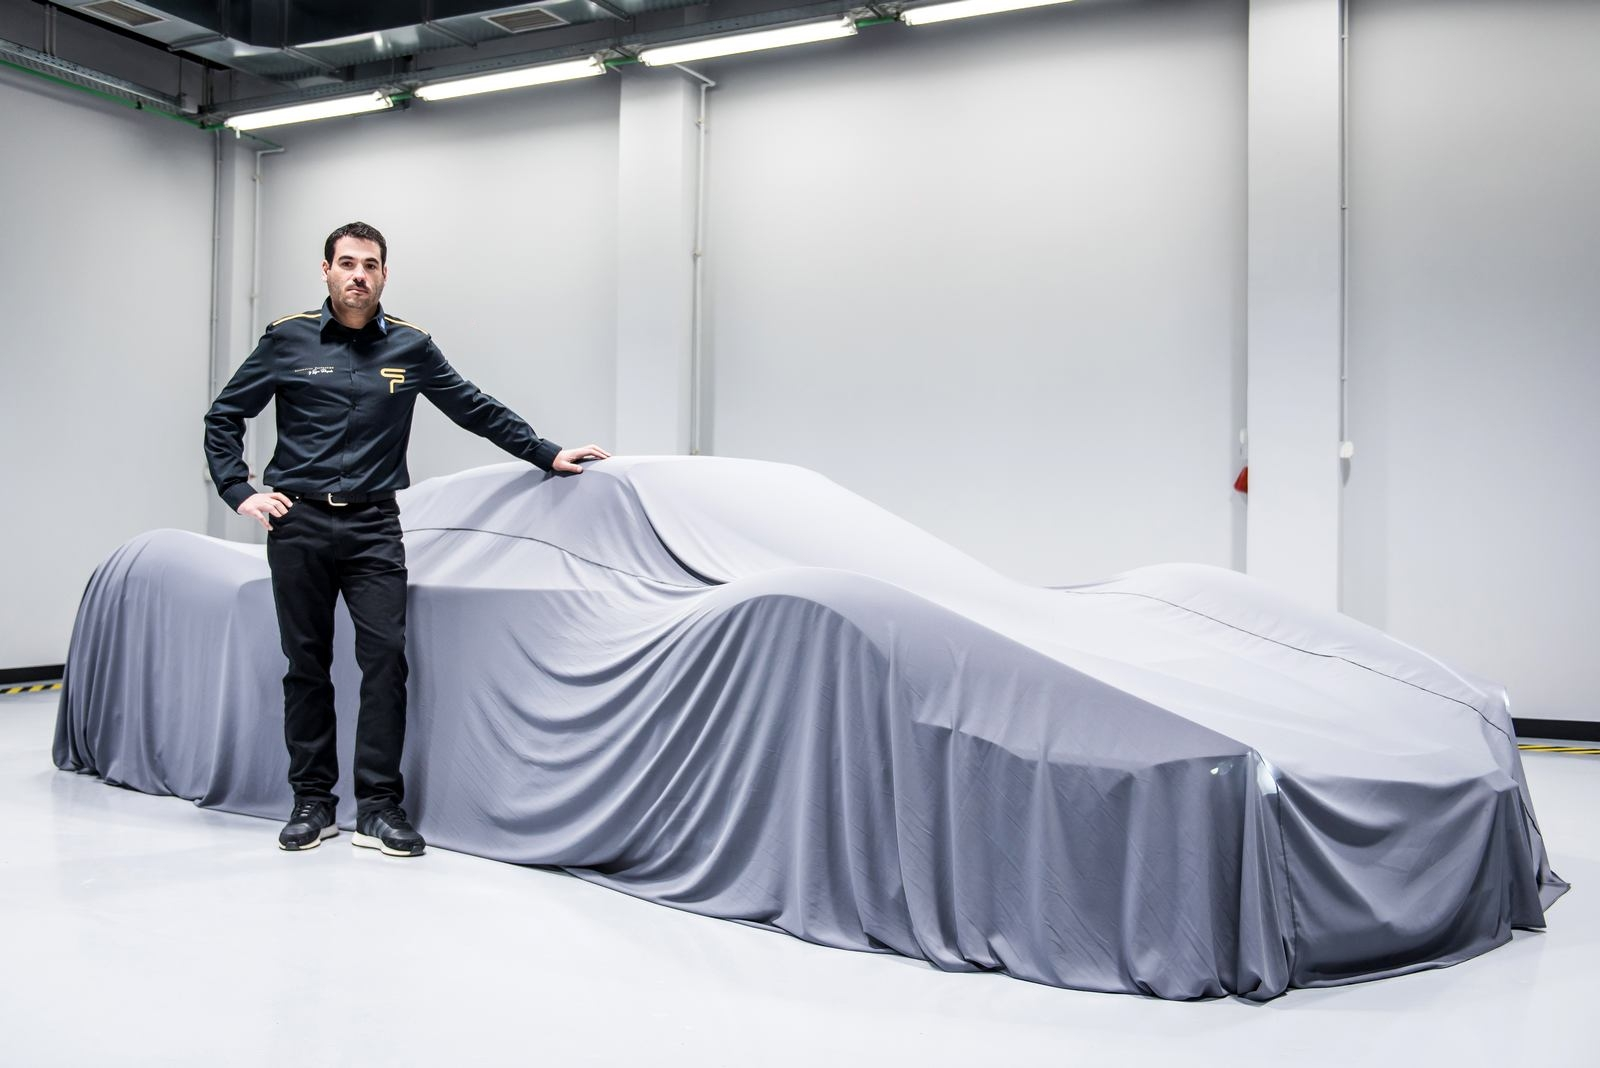 Greek car aficionado and tuning expert Spyros Panopoulos has revealed the first teaser images of the Chaos, an insane 3,000-horsepower (2,237-kW) hypercar.